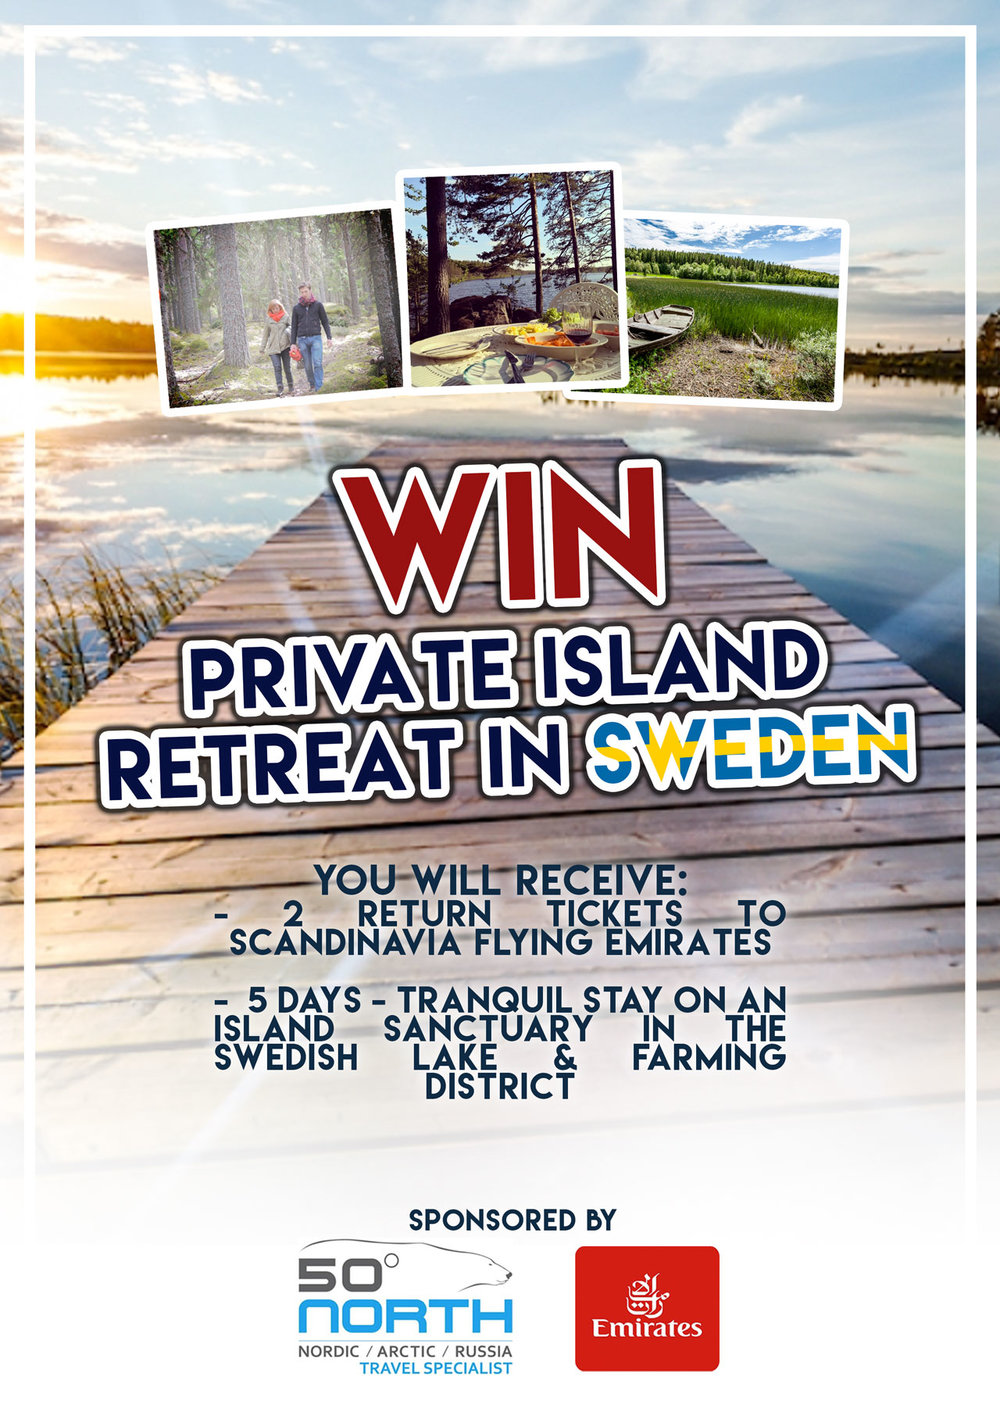 1st Prize - Return Flights for 2 people to Scandinavian + a one week stay at a private island retreat in Sweden.Value: $11 000.00WINNER: Ticket Nr 1484Maikki Toivannen